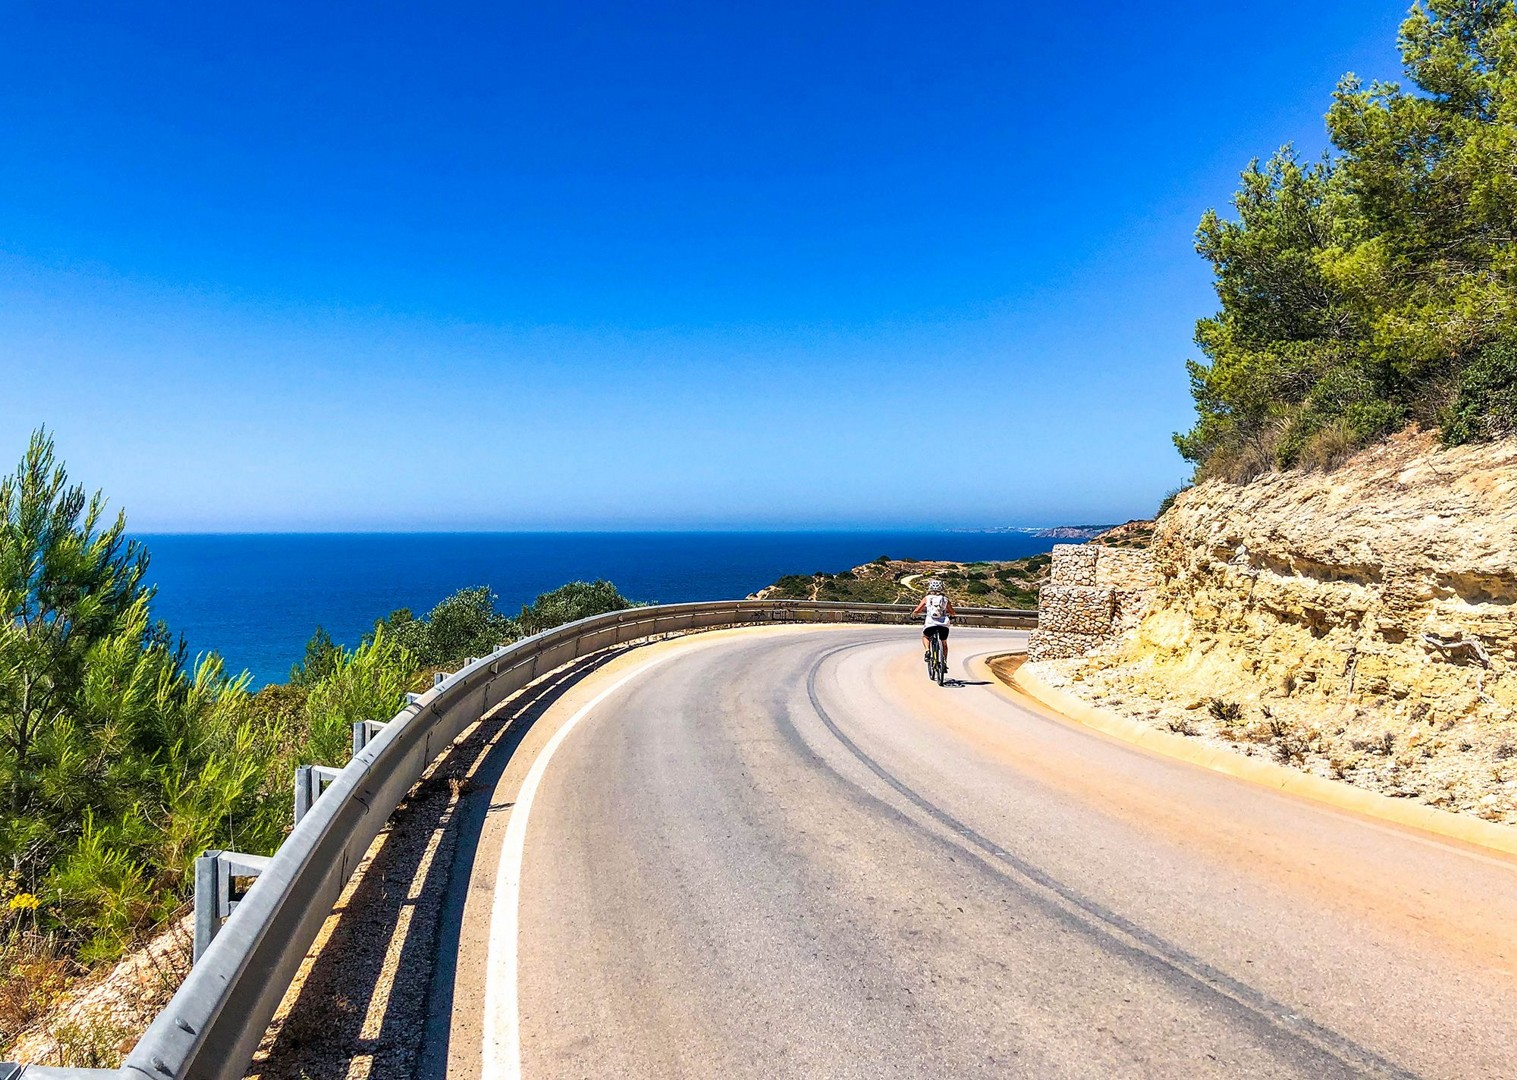 saddle-skedaddle-portugal-self-guided-leisure-holiday-cycling.jpg - Portugal - Alentejo and Algarve Coastal Explorer - Self-Guided Leisure Cycling Holiday - Leisure Cycling